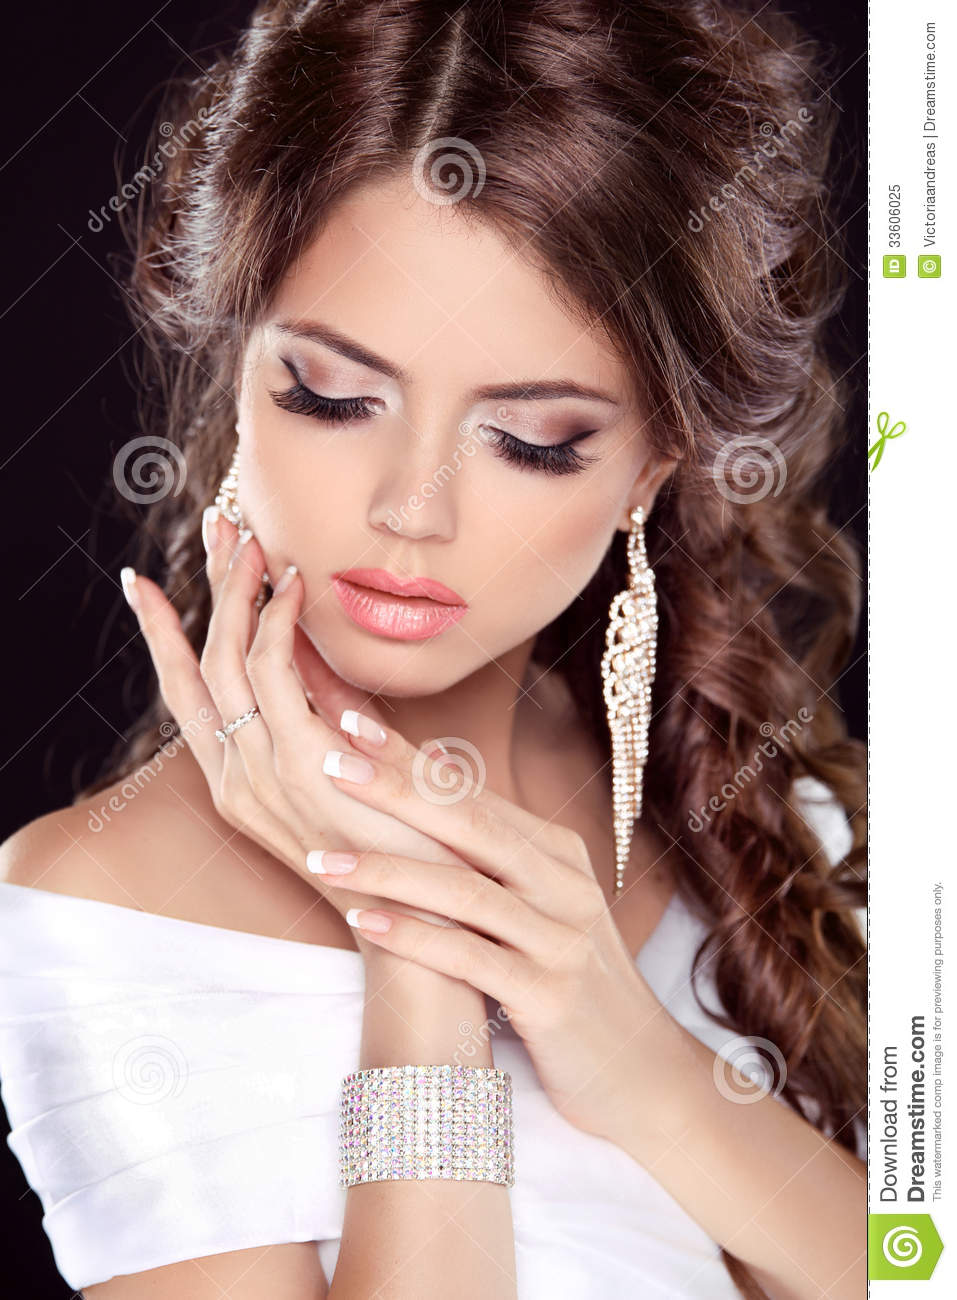 White dress and makeup - Beautiful